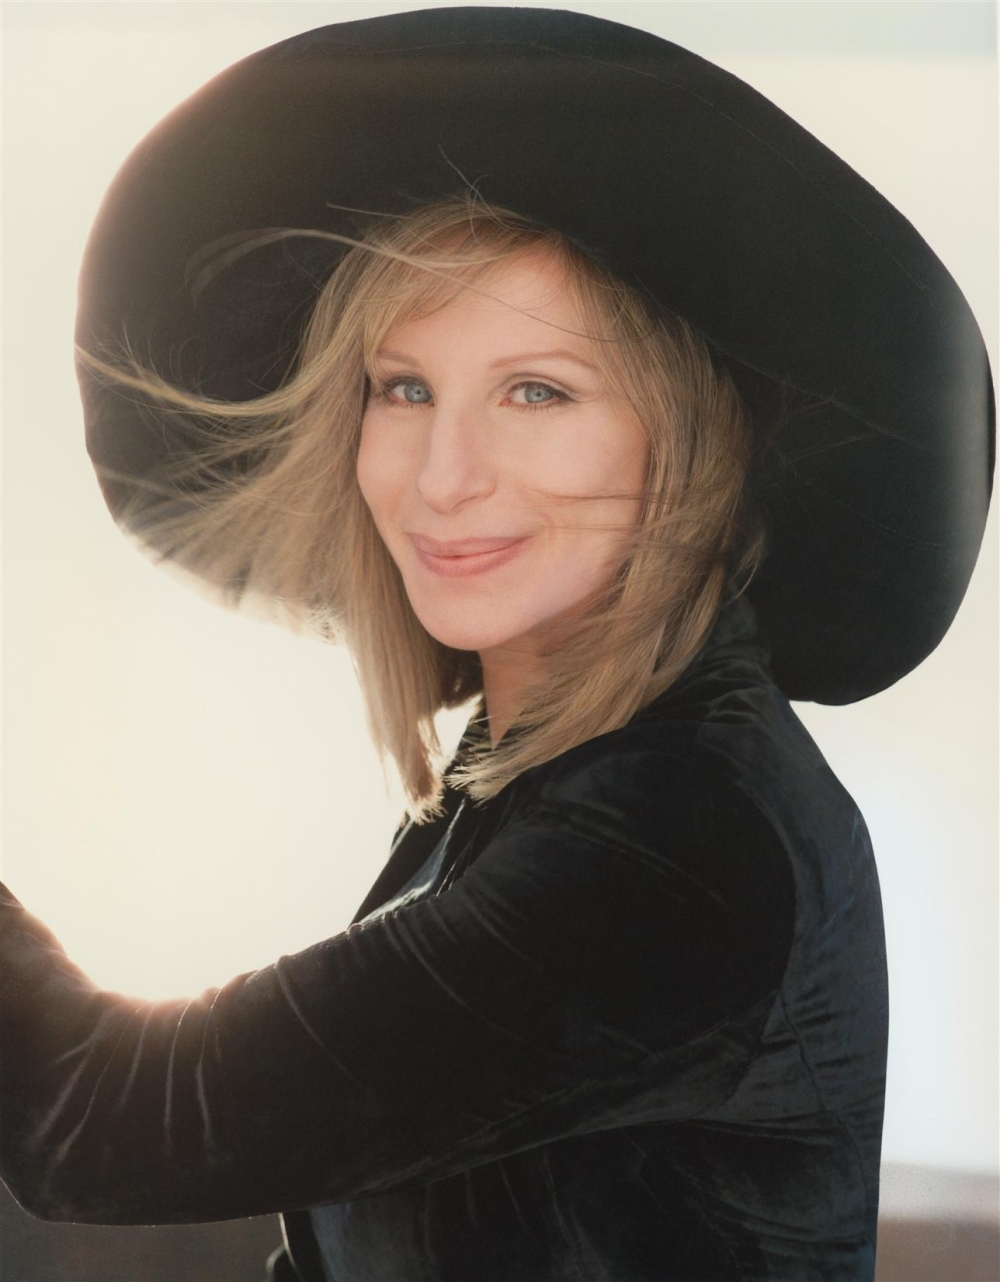 an analysis of the life and work of barbra streisand an american singer